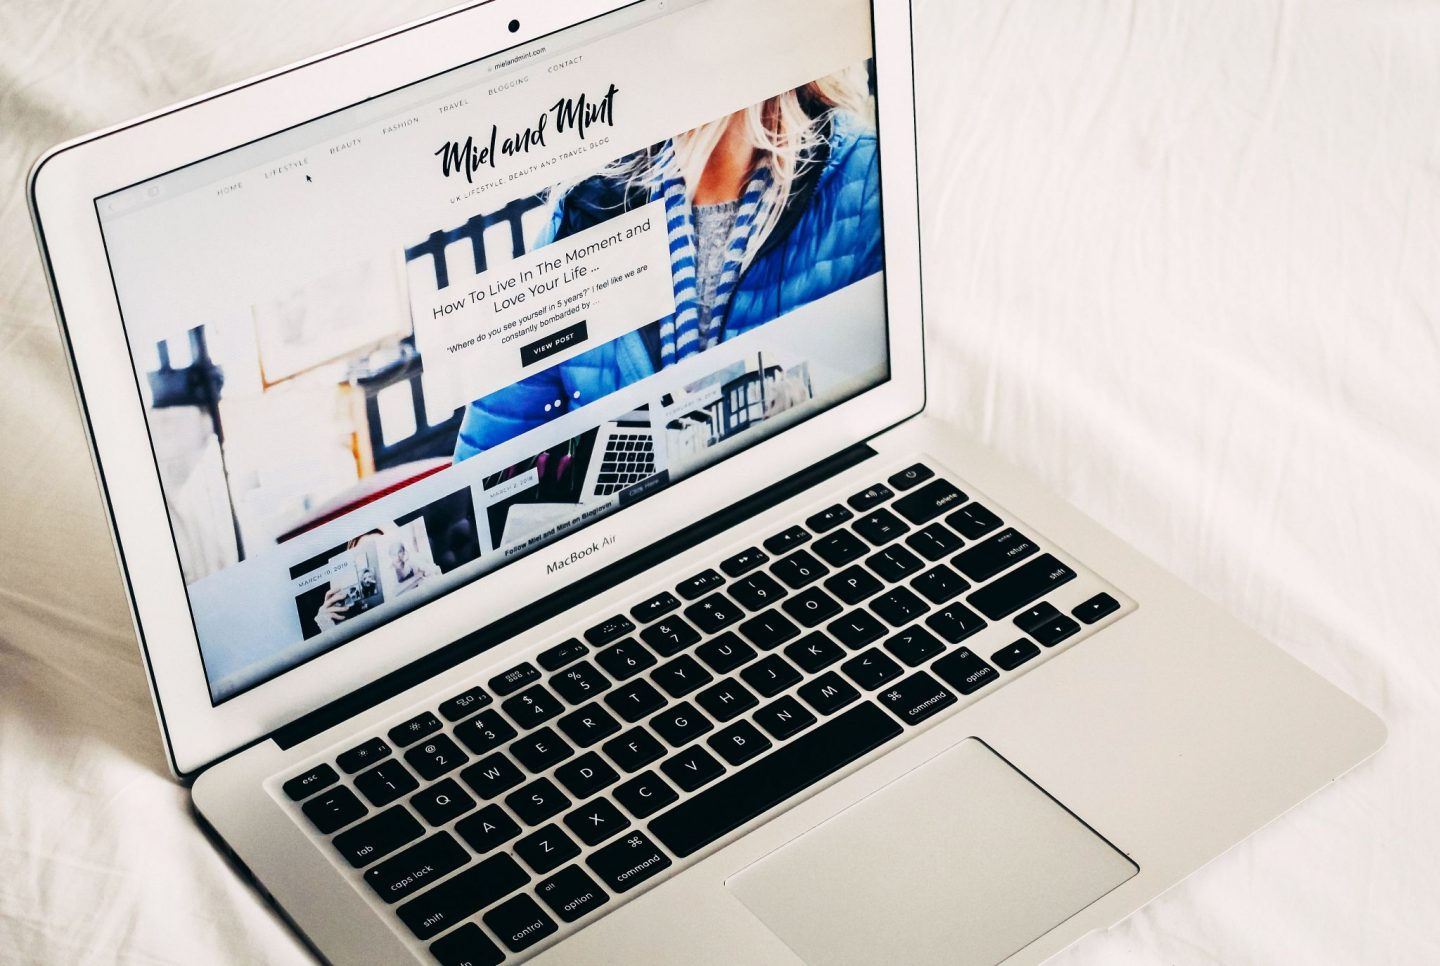 6 weeks without blogging - Miel and Mint